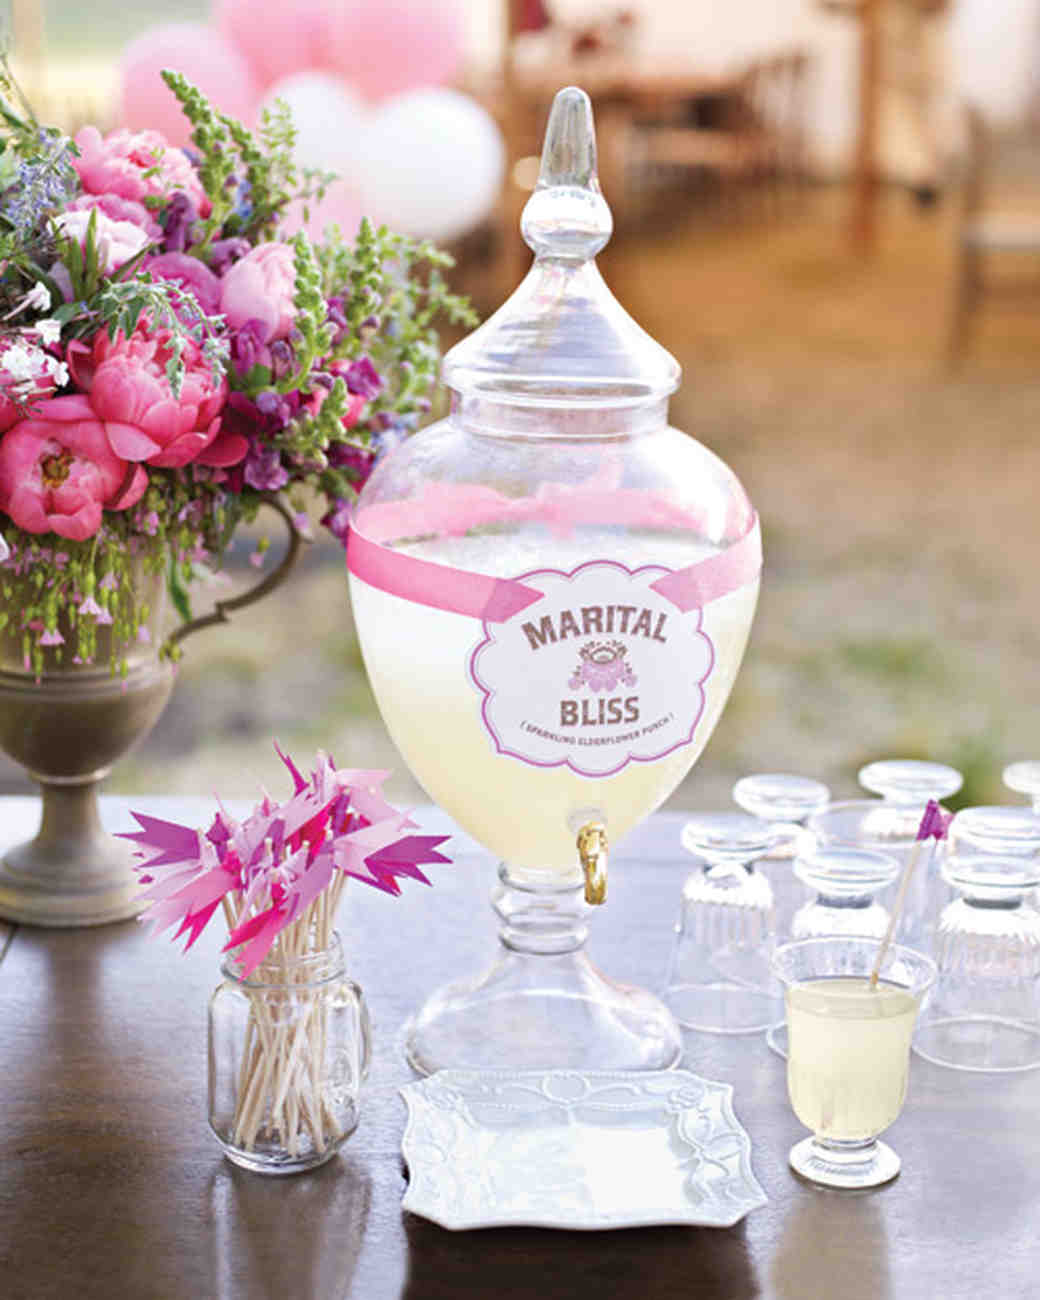 Marital Bliss Cocktail Recipe And Drink Label How To Recipe | Martha  Stewart Weddings